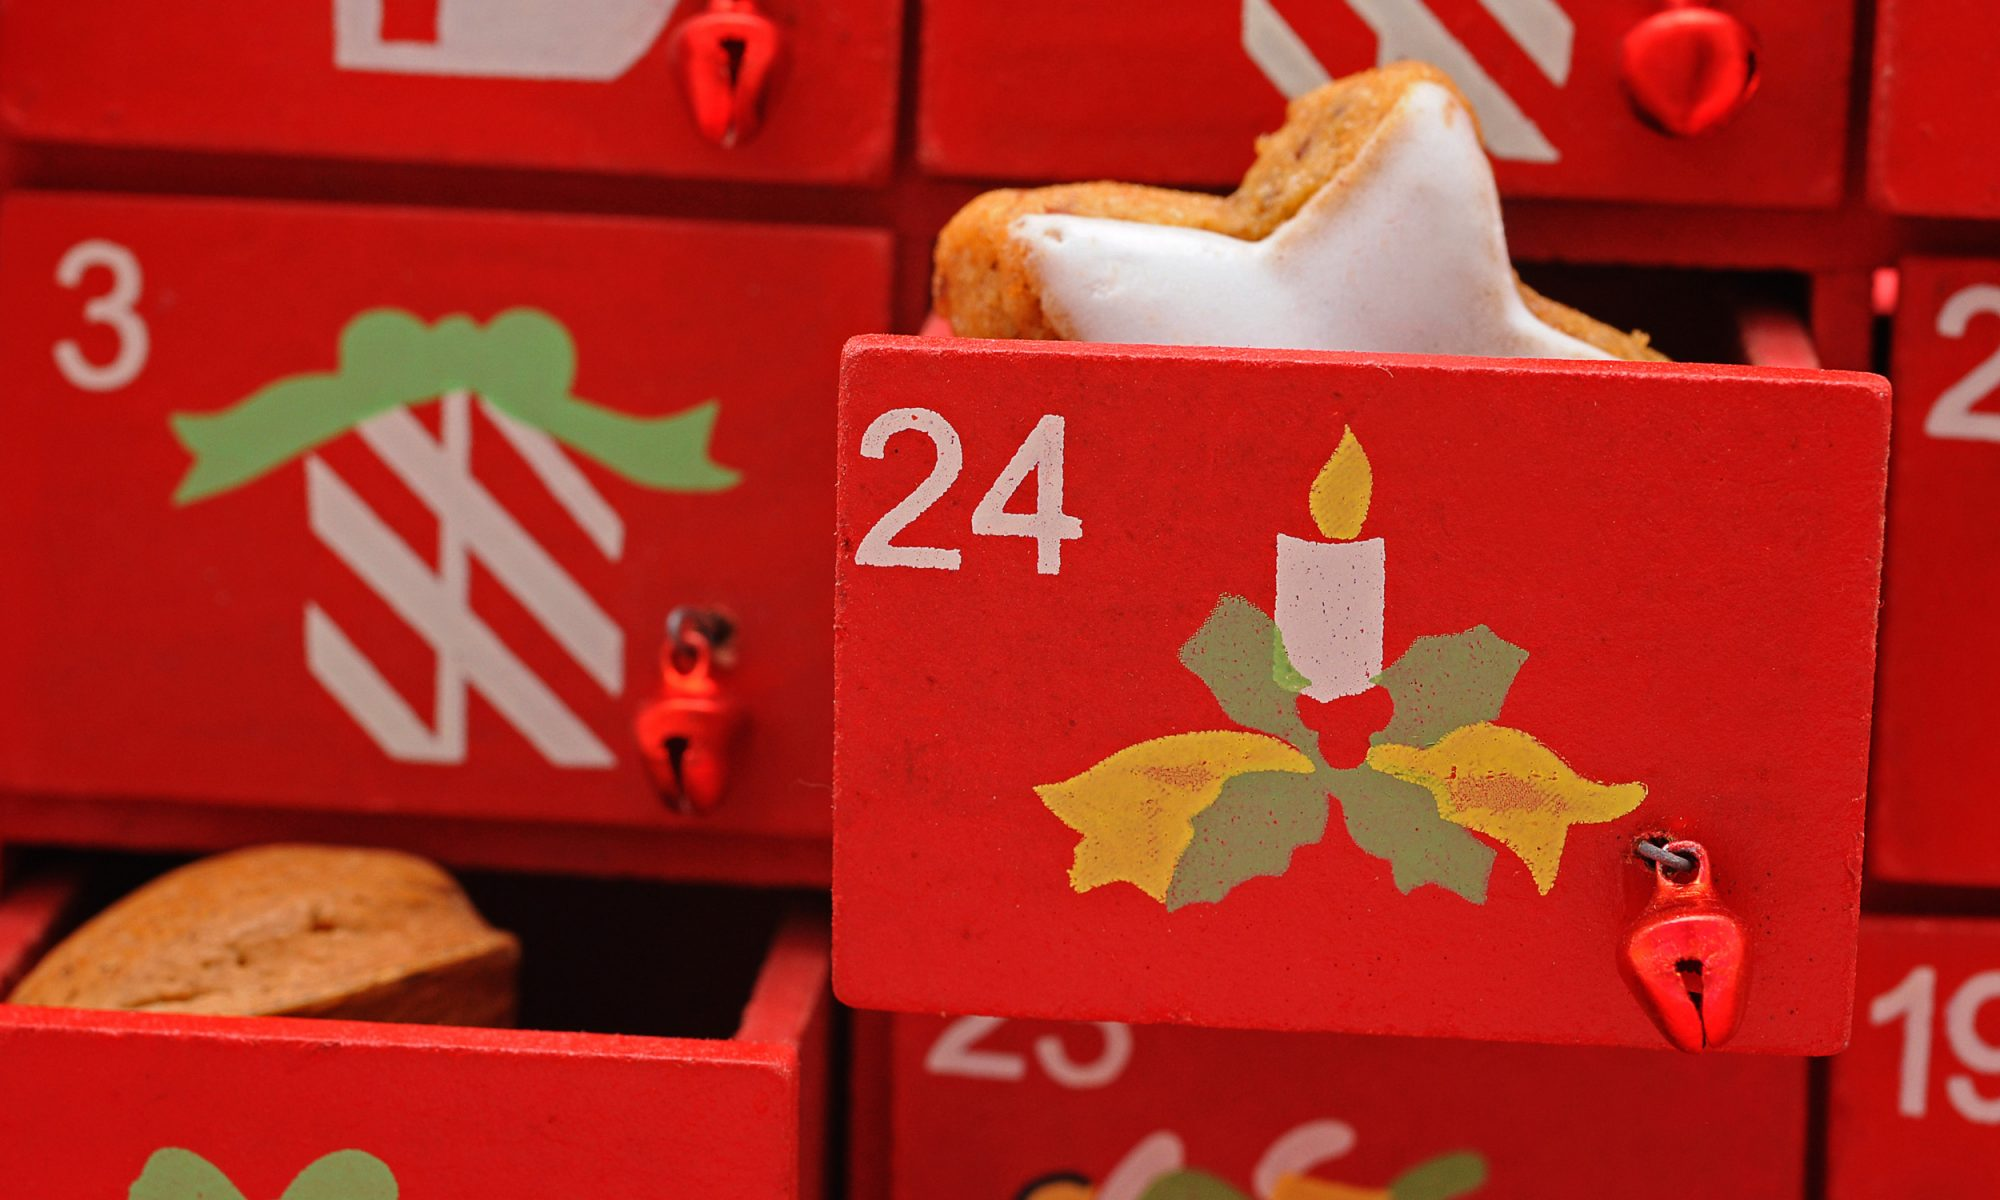 EC: Forget Chocolate: Now There's a CHEESE Advent Calendar This Holiday Season